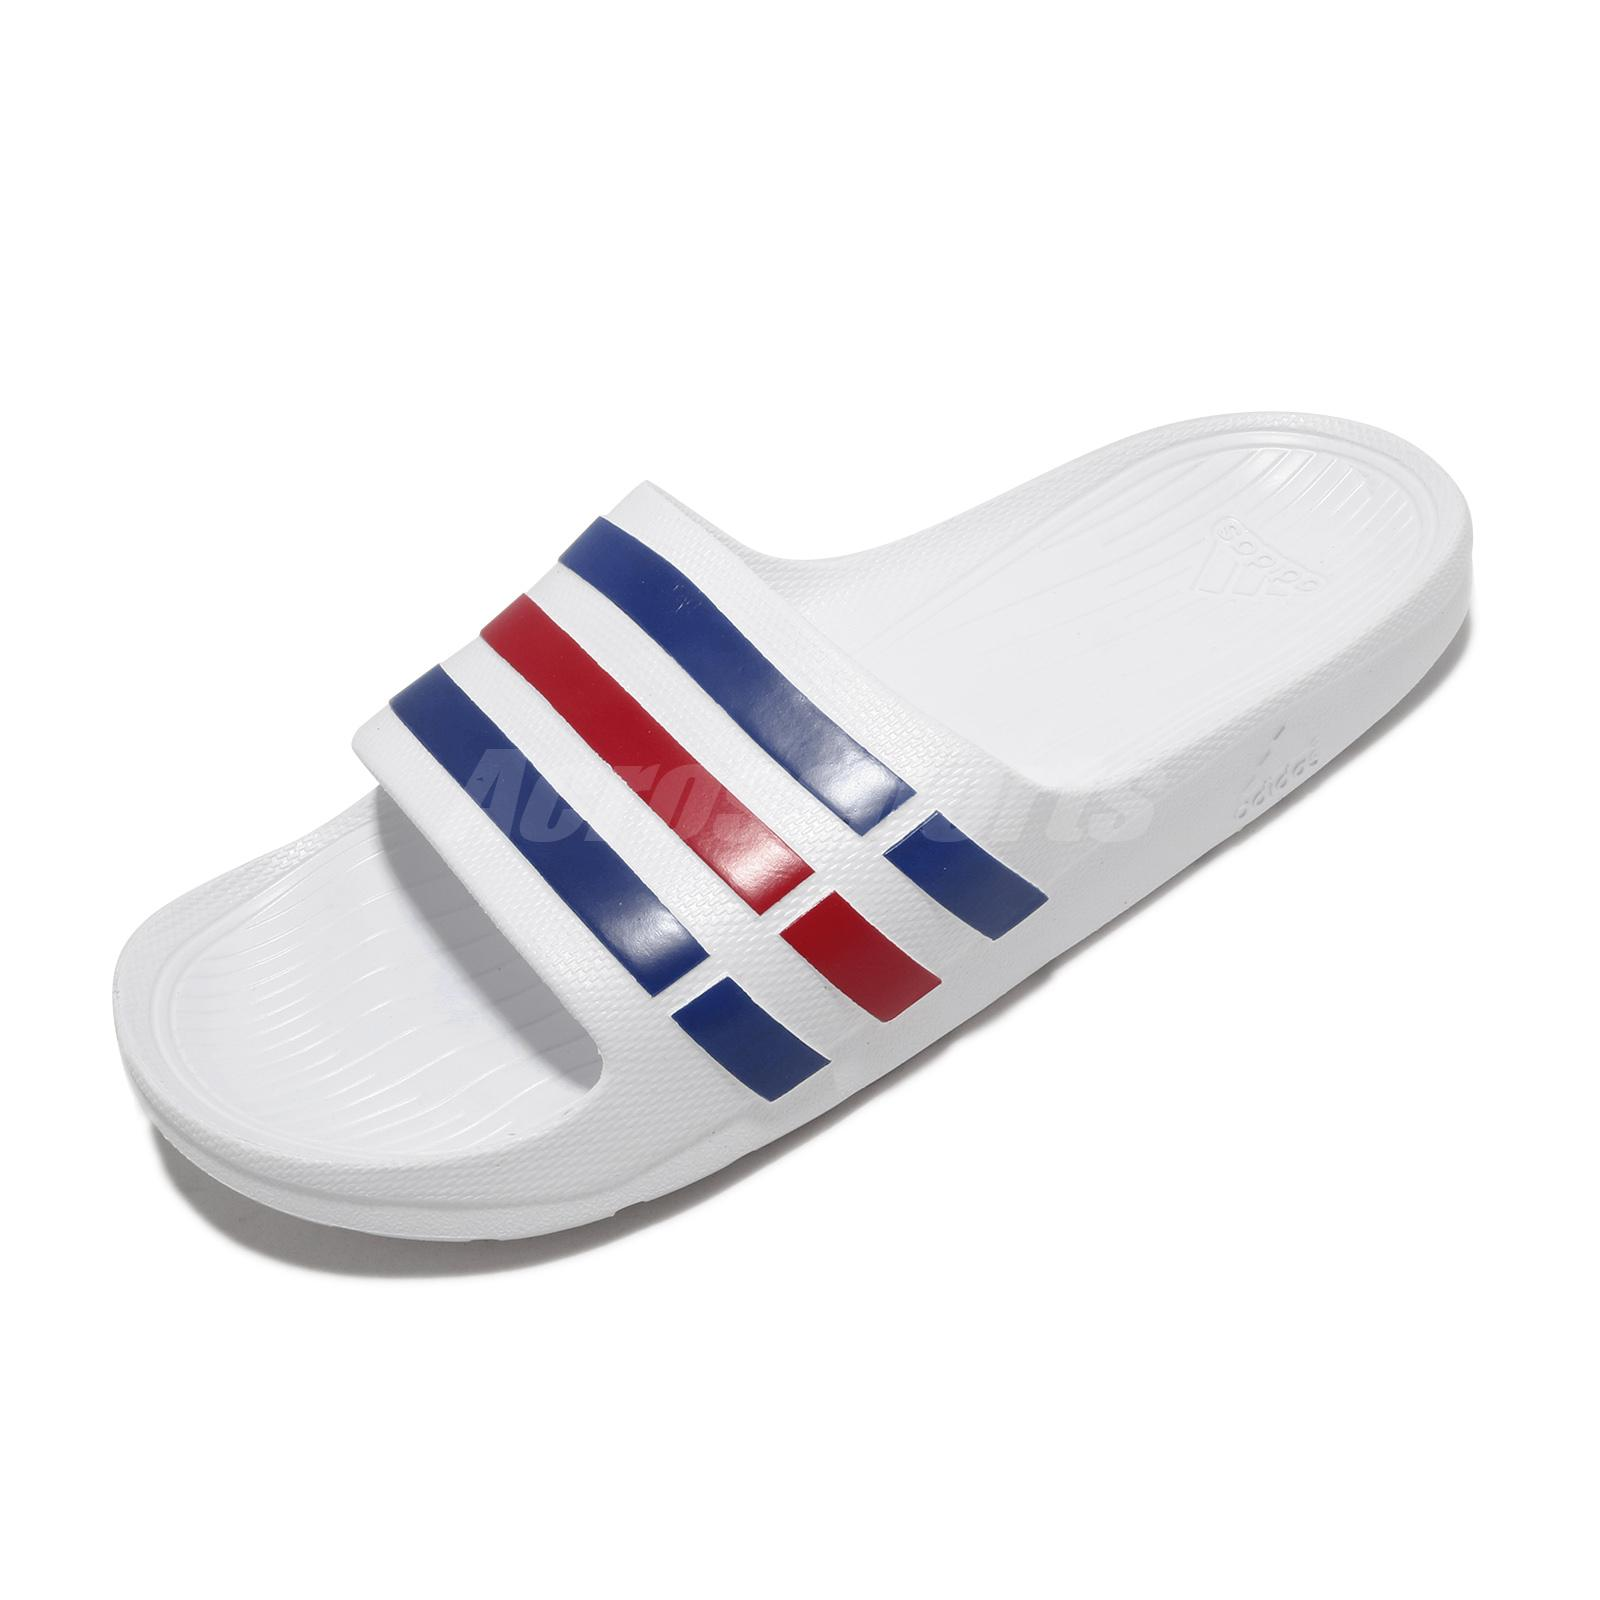 adidas Duramo Slide White Blue Red Mens Womens Sports Slide Slippers U43664